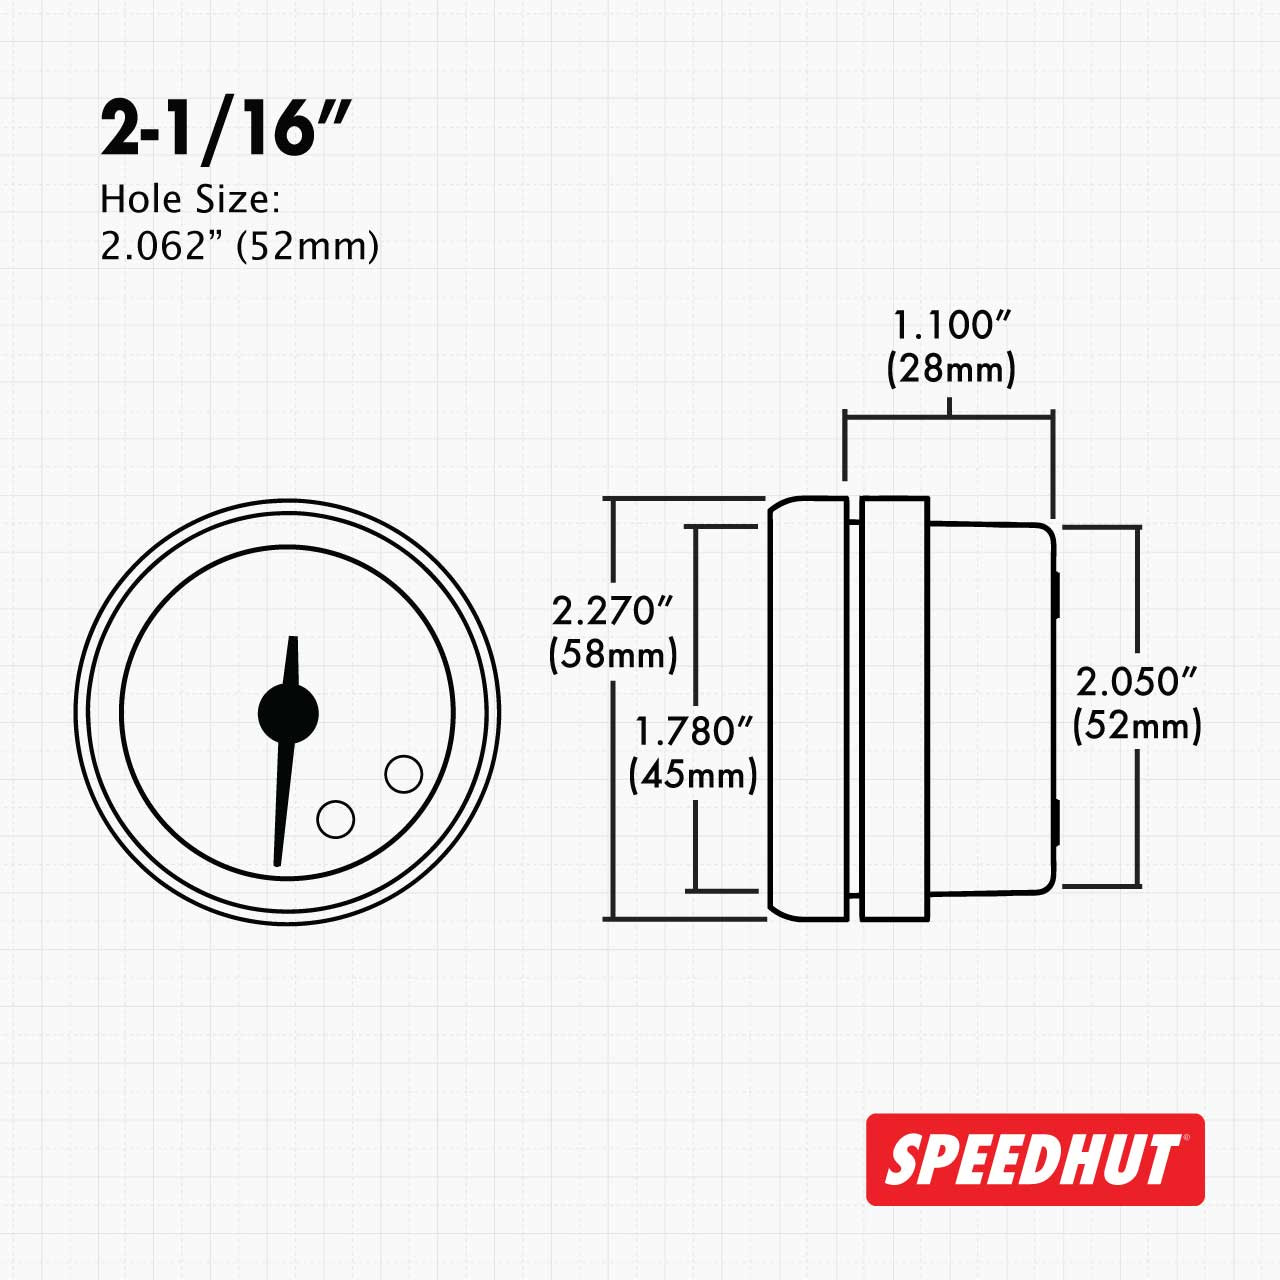 """2-1/16"""" Freedom CAN-BUS Oil Pressure Gauge 0-7 bar (w/ warning) (For GM vehicles only)"""